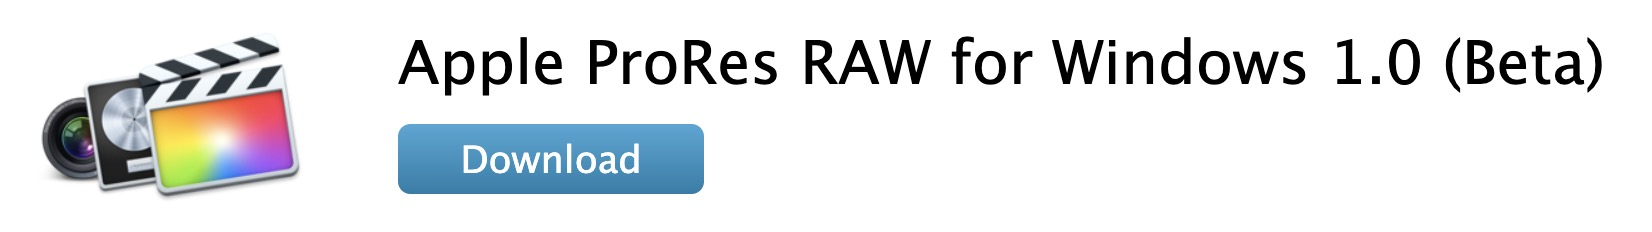 Apple ProRes RAW for Windows 1.0 (Beta) Download Now Available